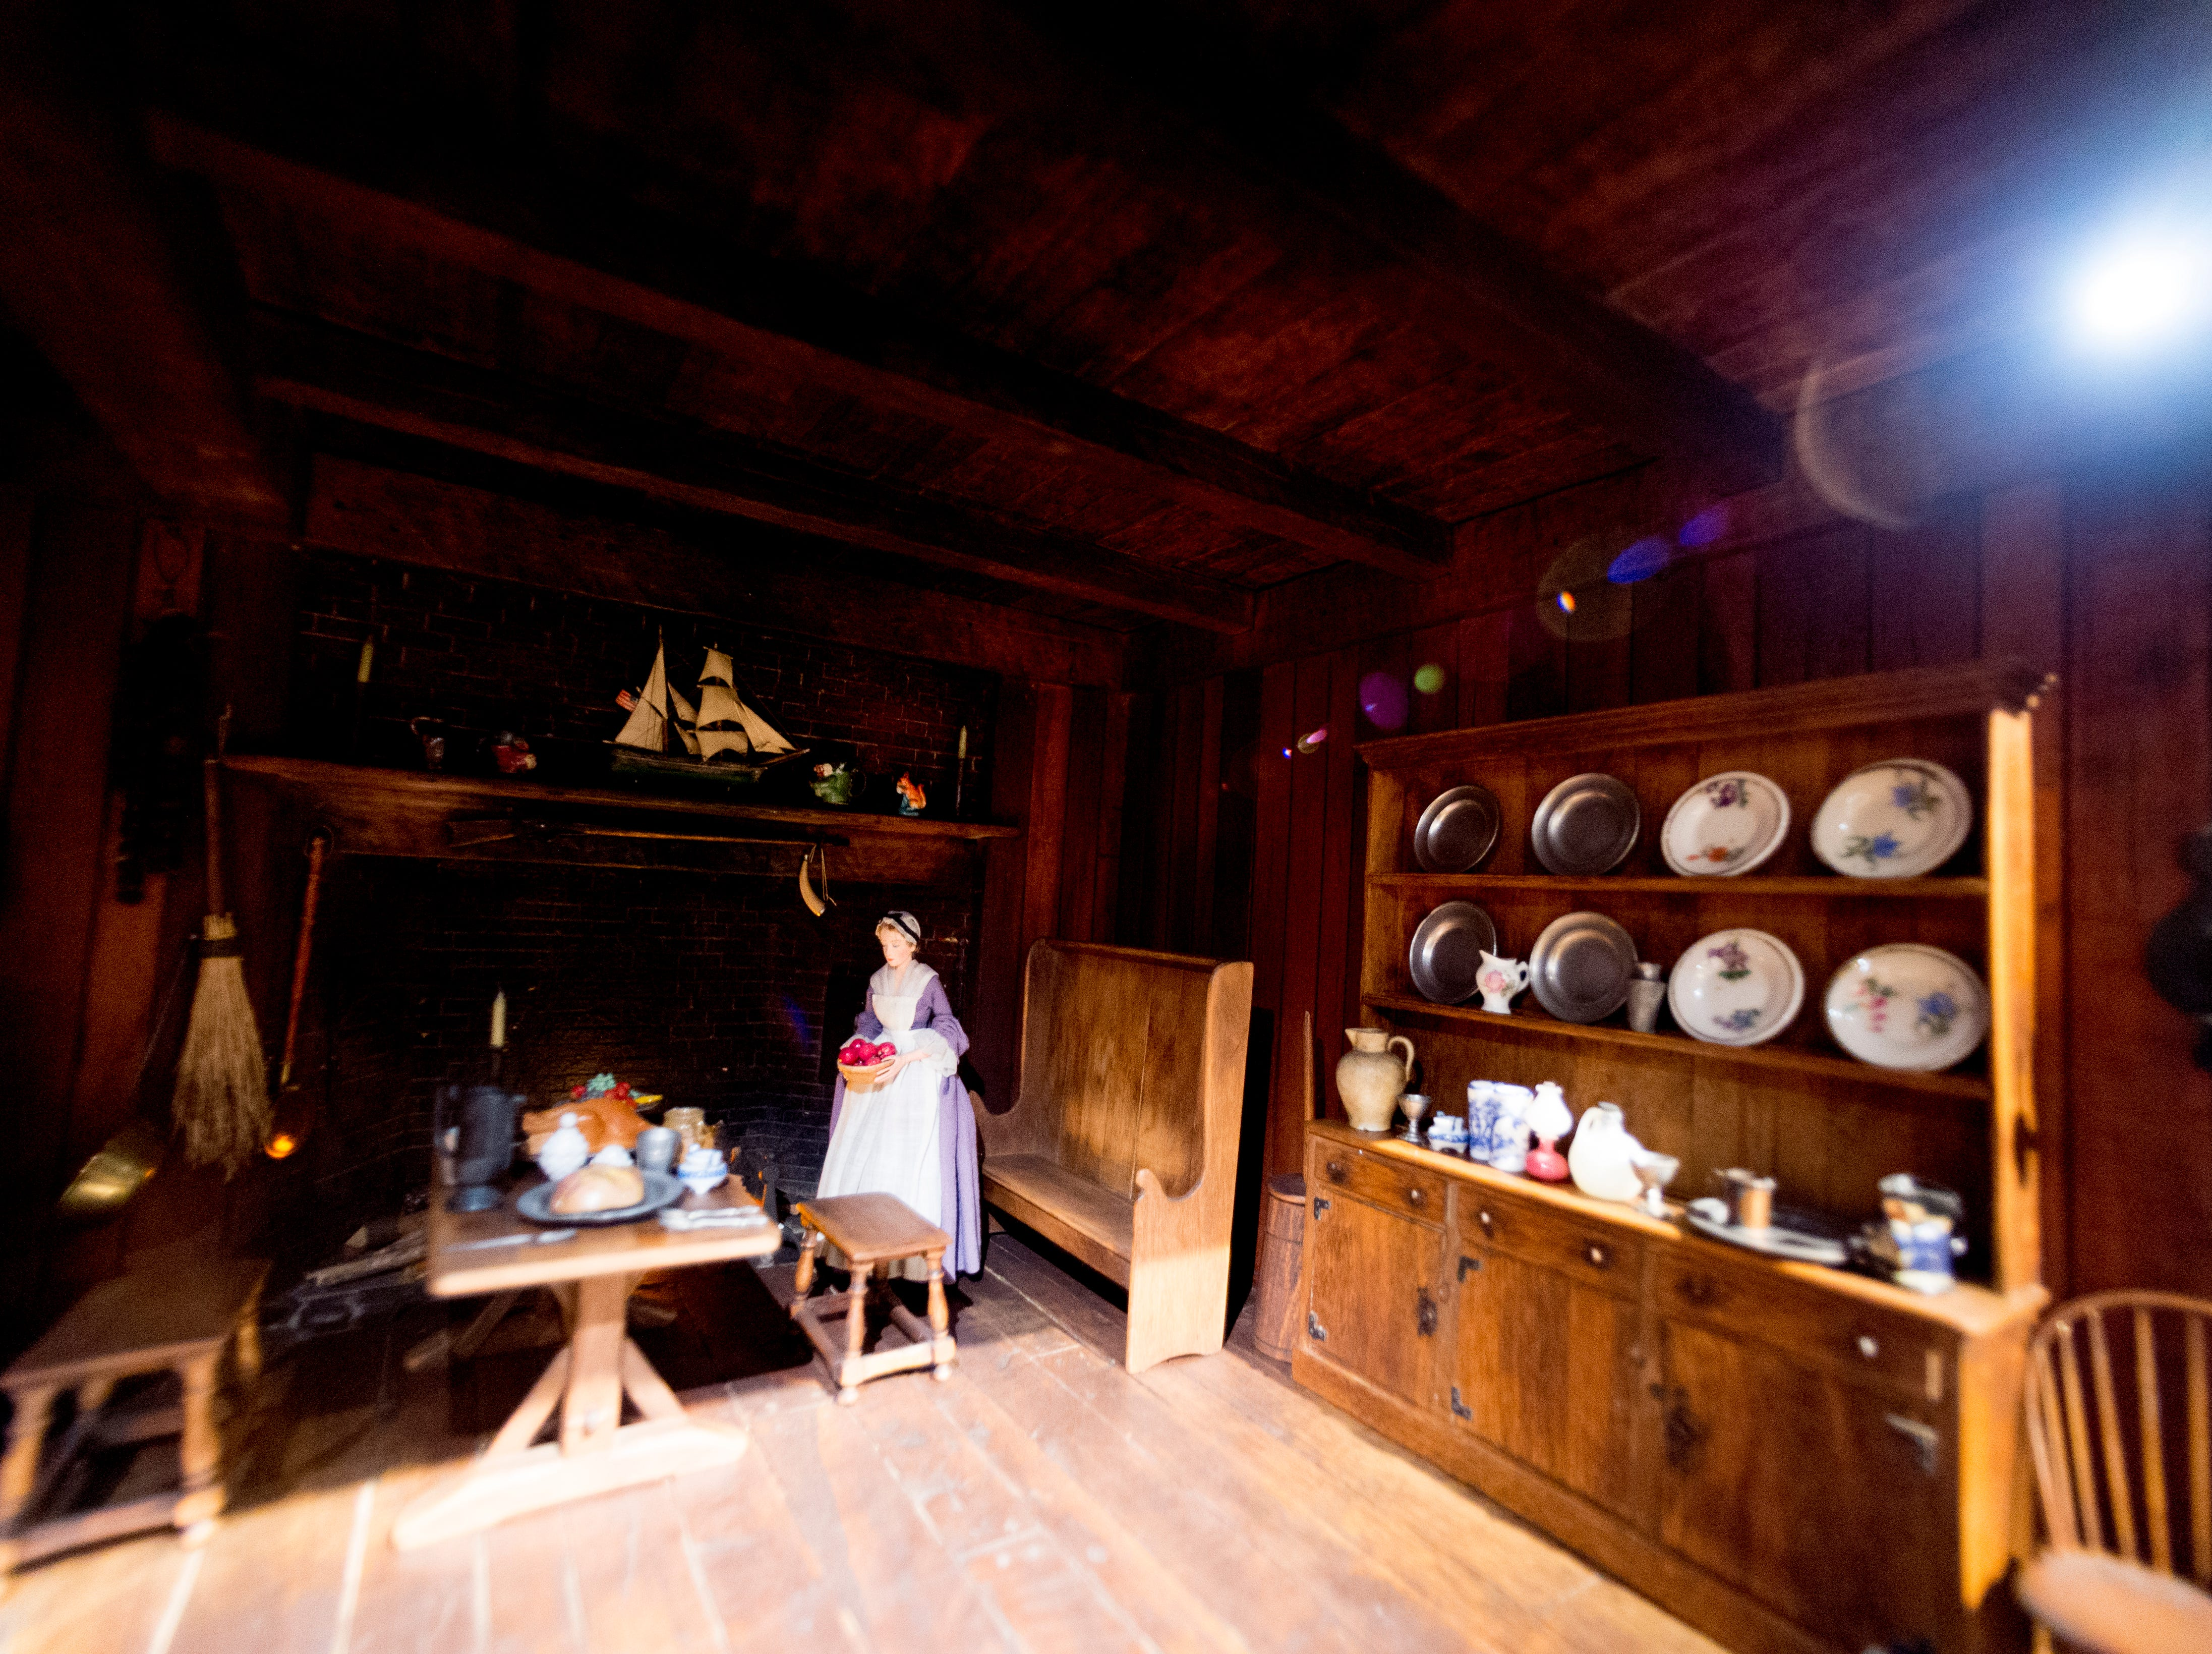 A view inside the Early American Kitchen display in the Thorne Room at the Knoxville Museum of Art in Knoxville, Tennessee on Tuesday, August 21, 2018. The nine miniature rooms were created in the 1930s and 40s by Mrs. James Ward Thorne to a scale of one inch to one foot.